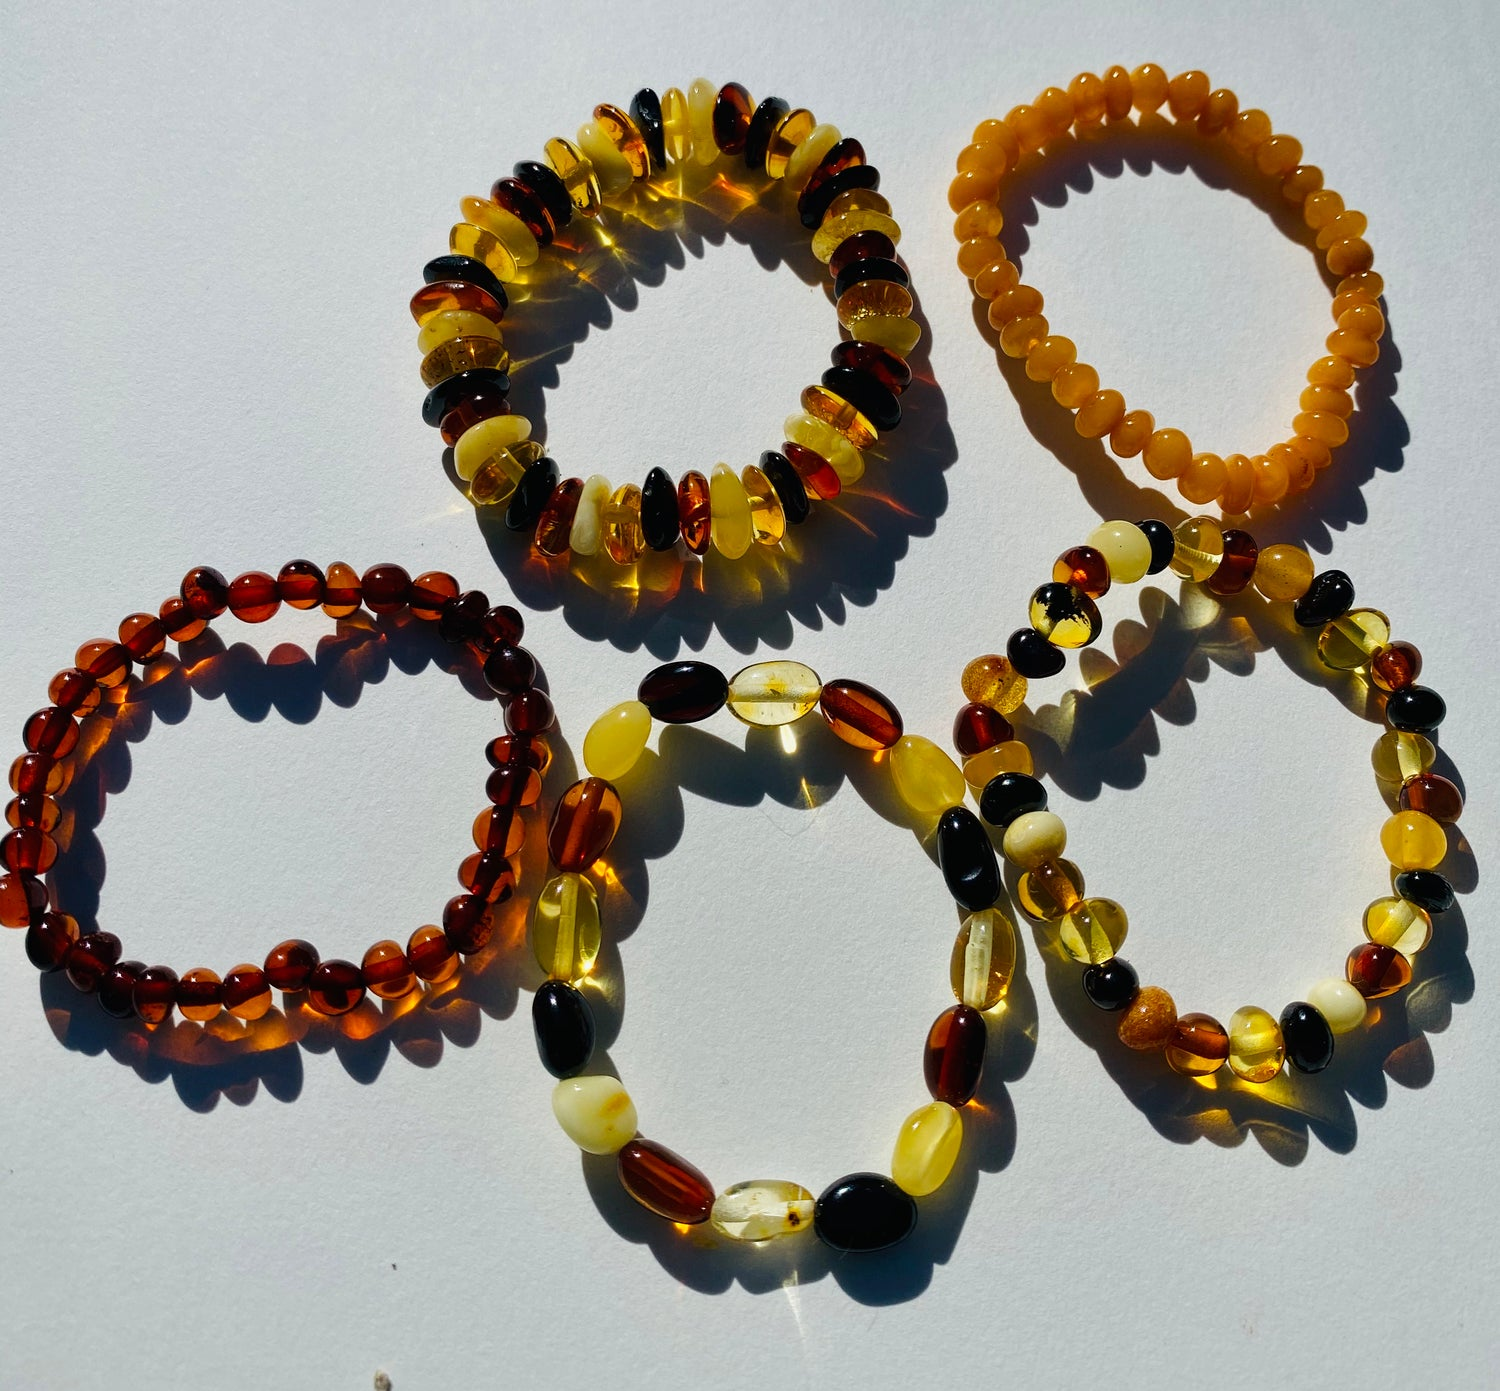 Stretchy Amber Childrens Bracelets Multi Color